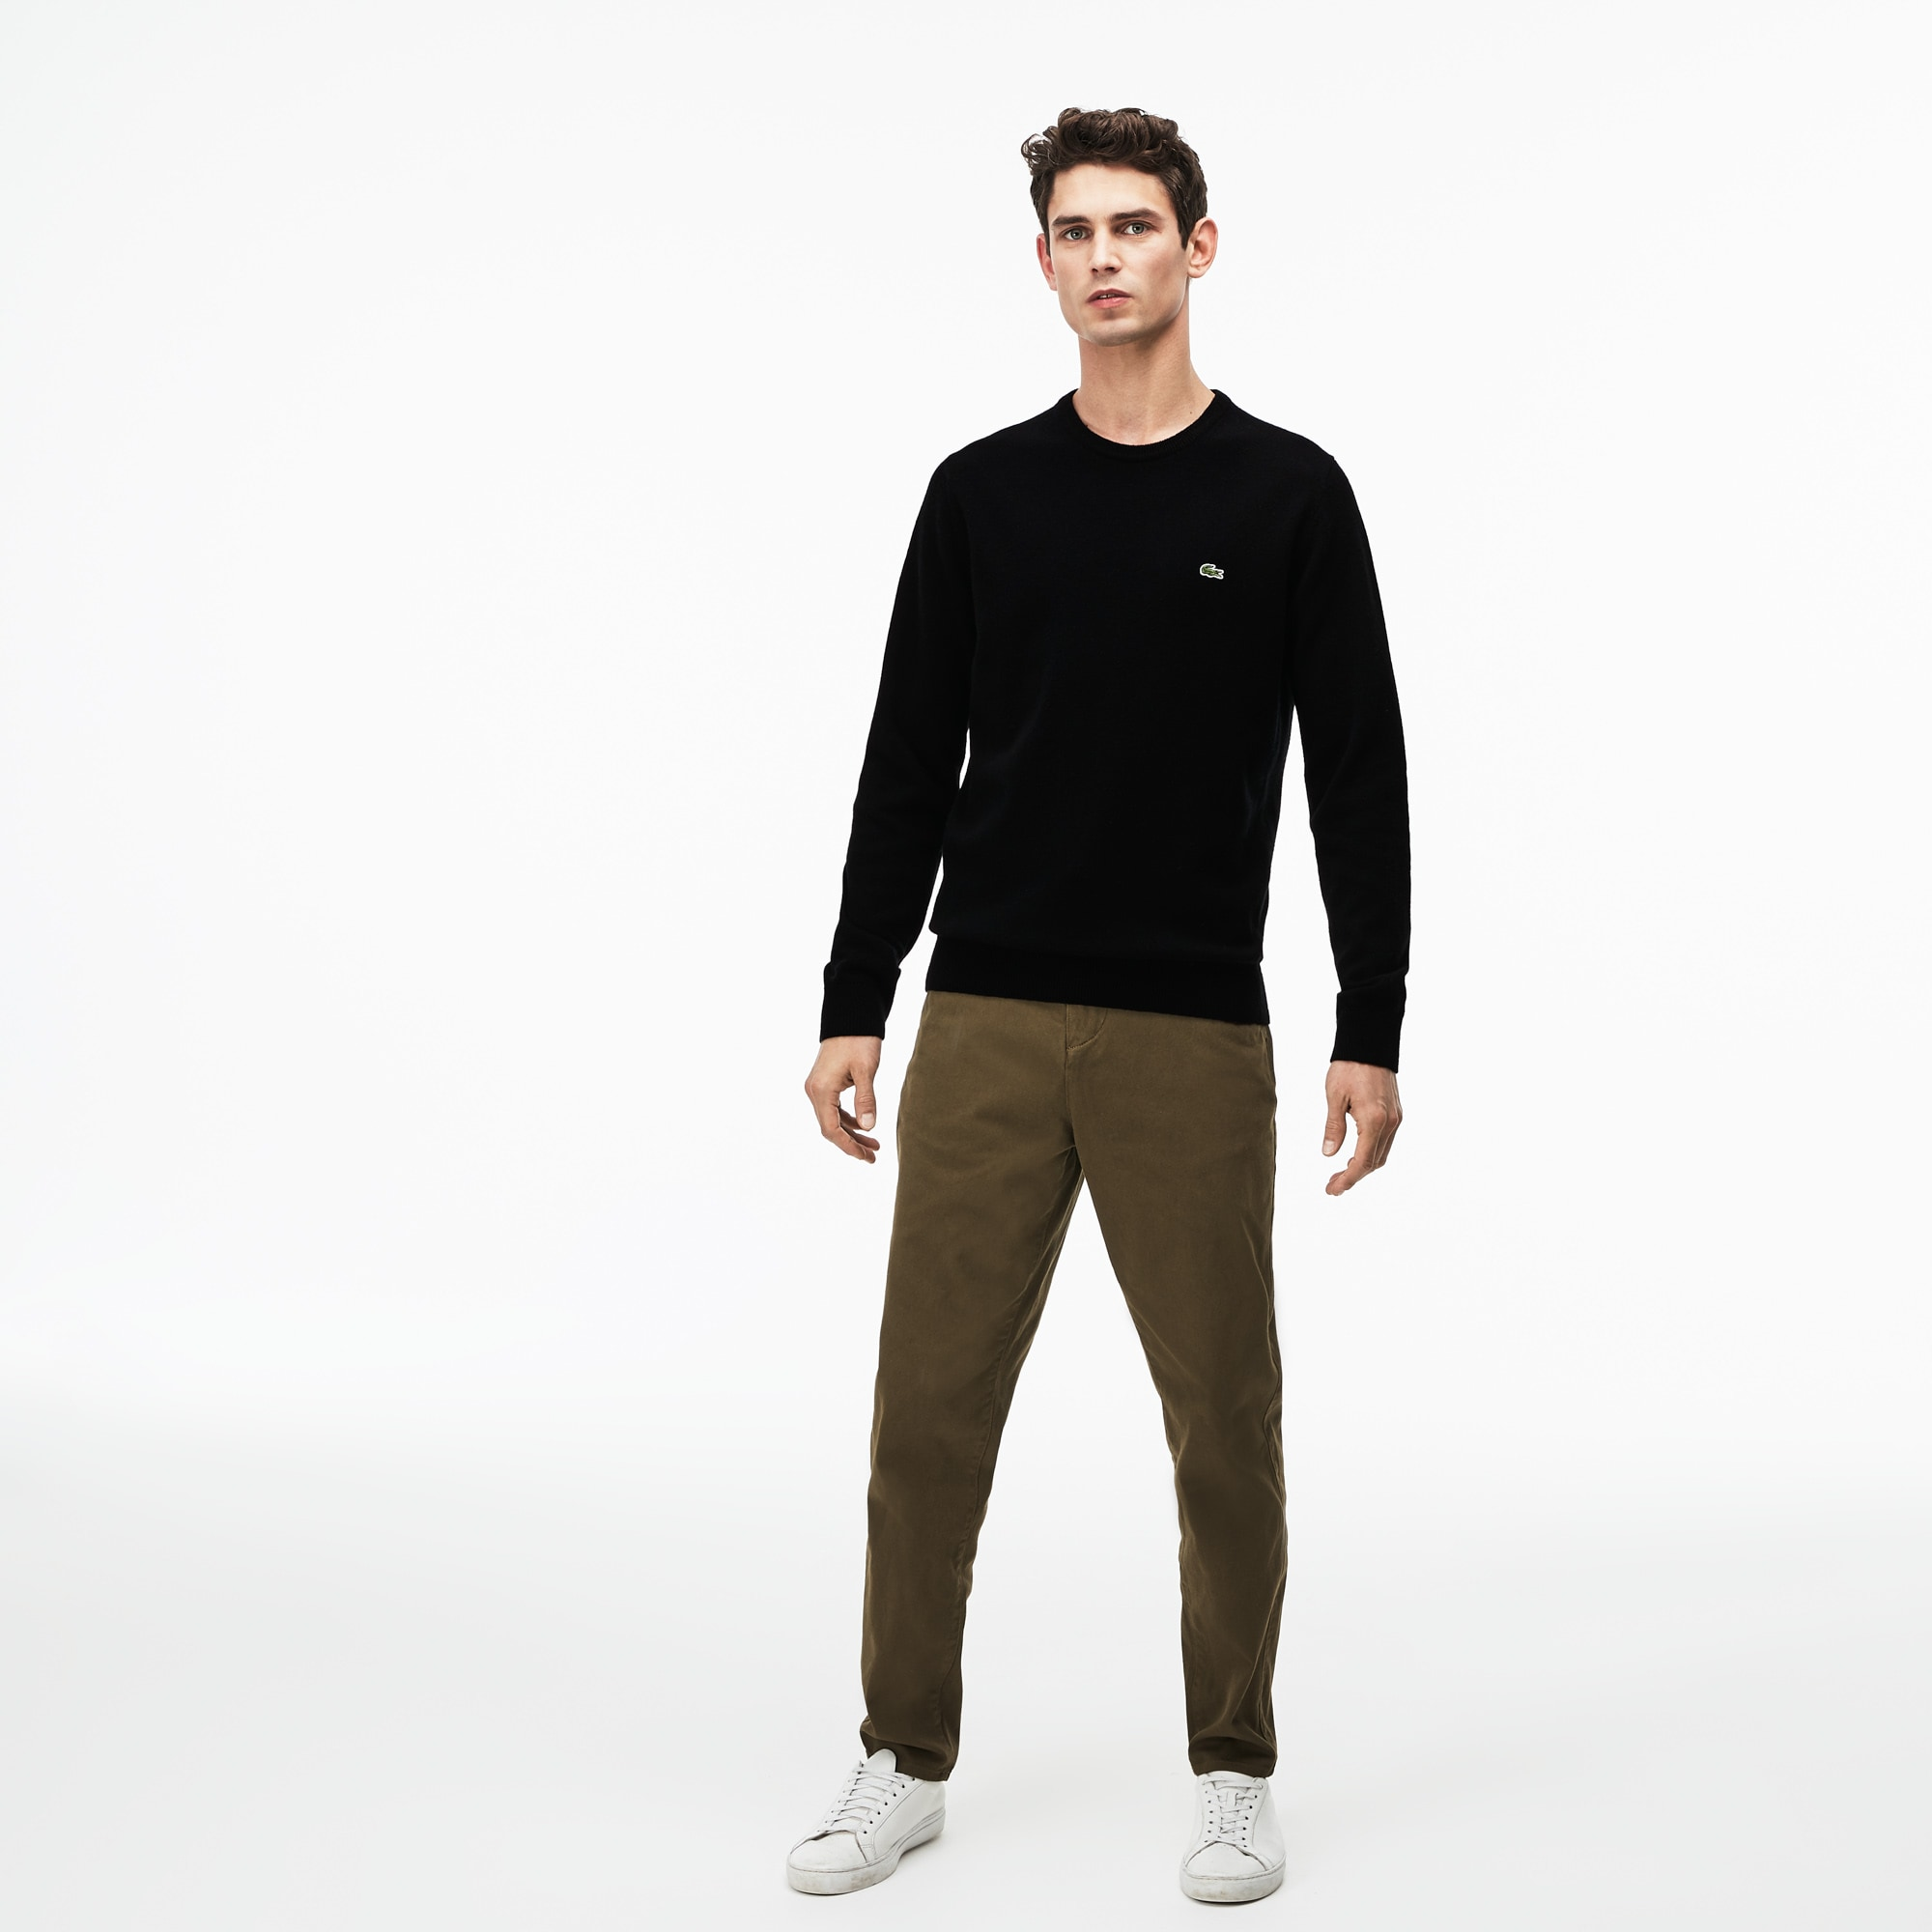 04f5e4dee1 Lacoste Pull Pull Homme Vêtements Vêtements Pull Lacoste Homme Lacoste  Vêtements Vêtements Homme Homme Pull r0wr8H